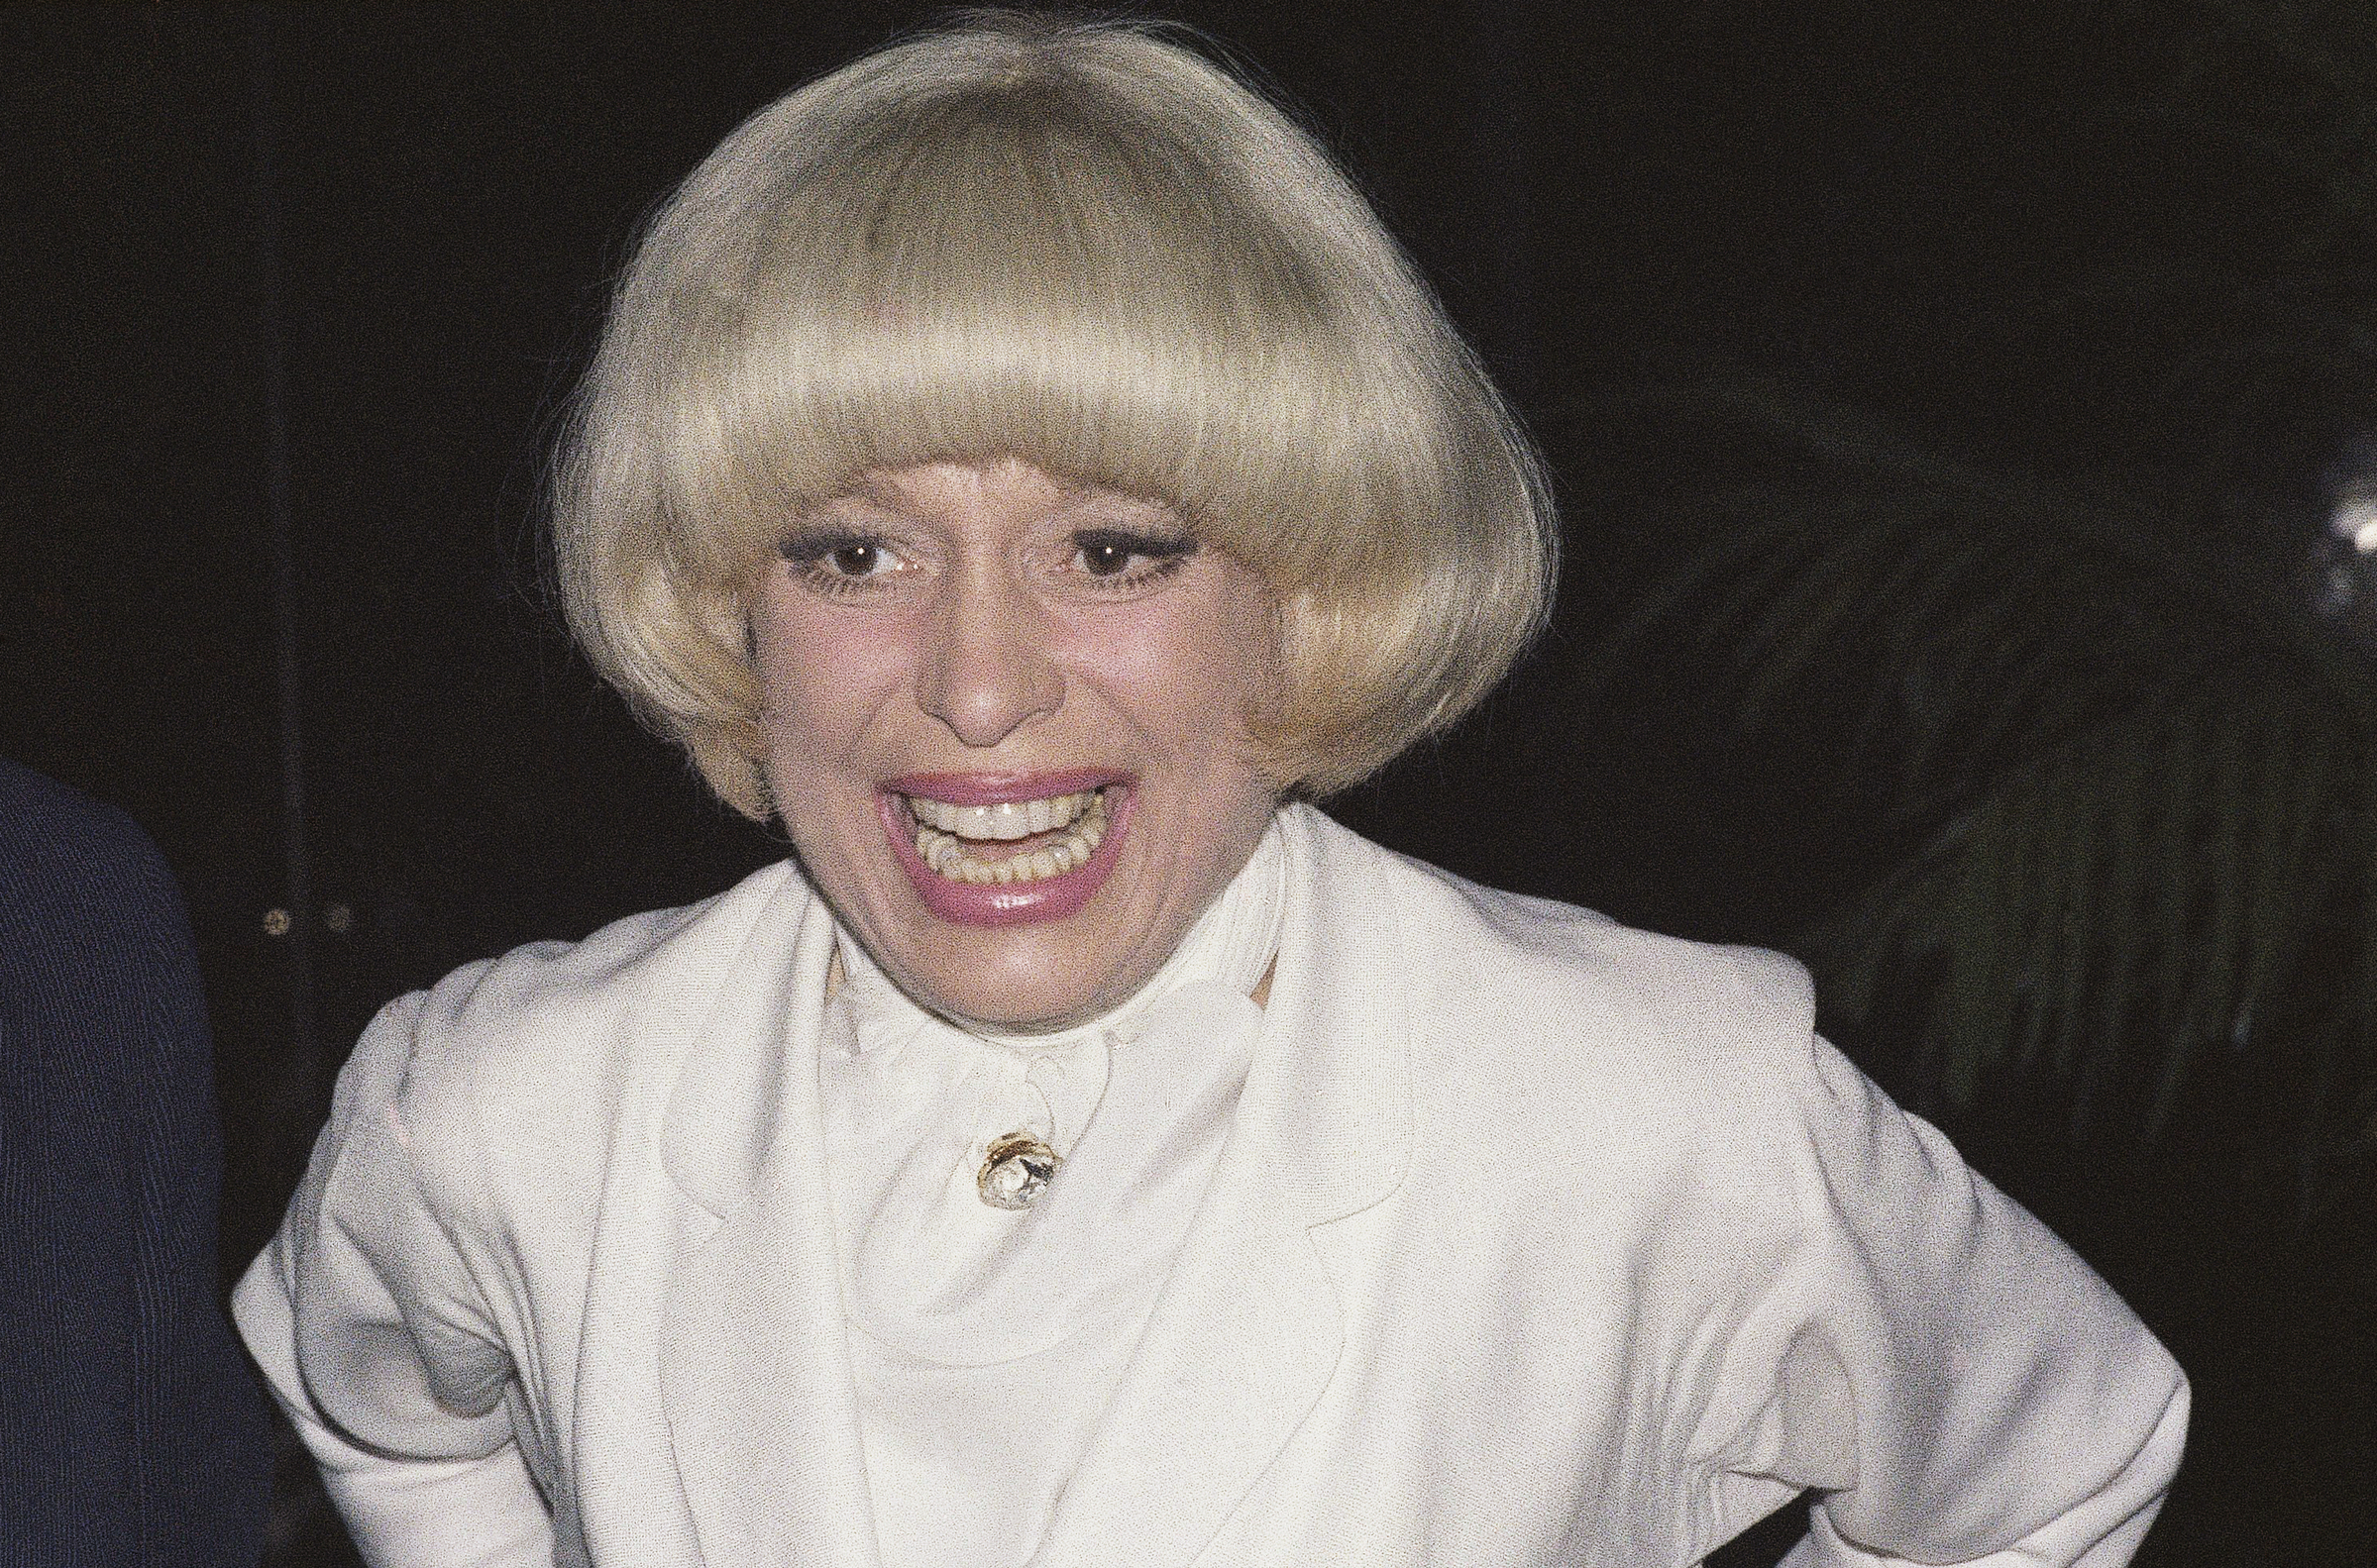 FILE - This  June 19, 1978 file photo shows actress Carol Channing in New York.  Channing, whose career spanned decades on Broadway and on television has died at age 97. Publicist B. Harlan Boll says Channing died of natural causes early Tuesday, Jan. 15, 2019 in Rancho Mirage, Calif.  (AP Photo/G. Paul Burnett, File )